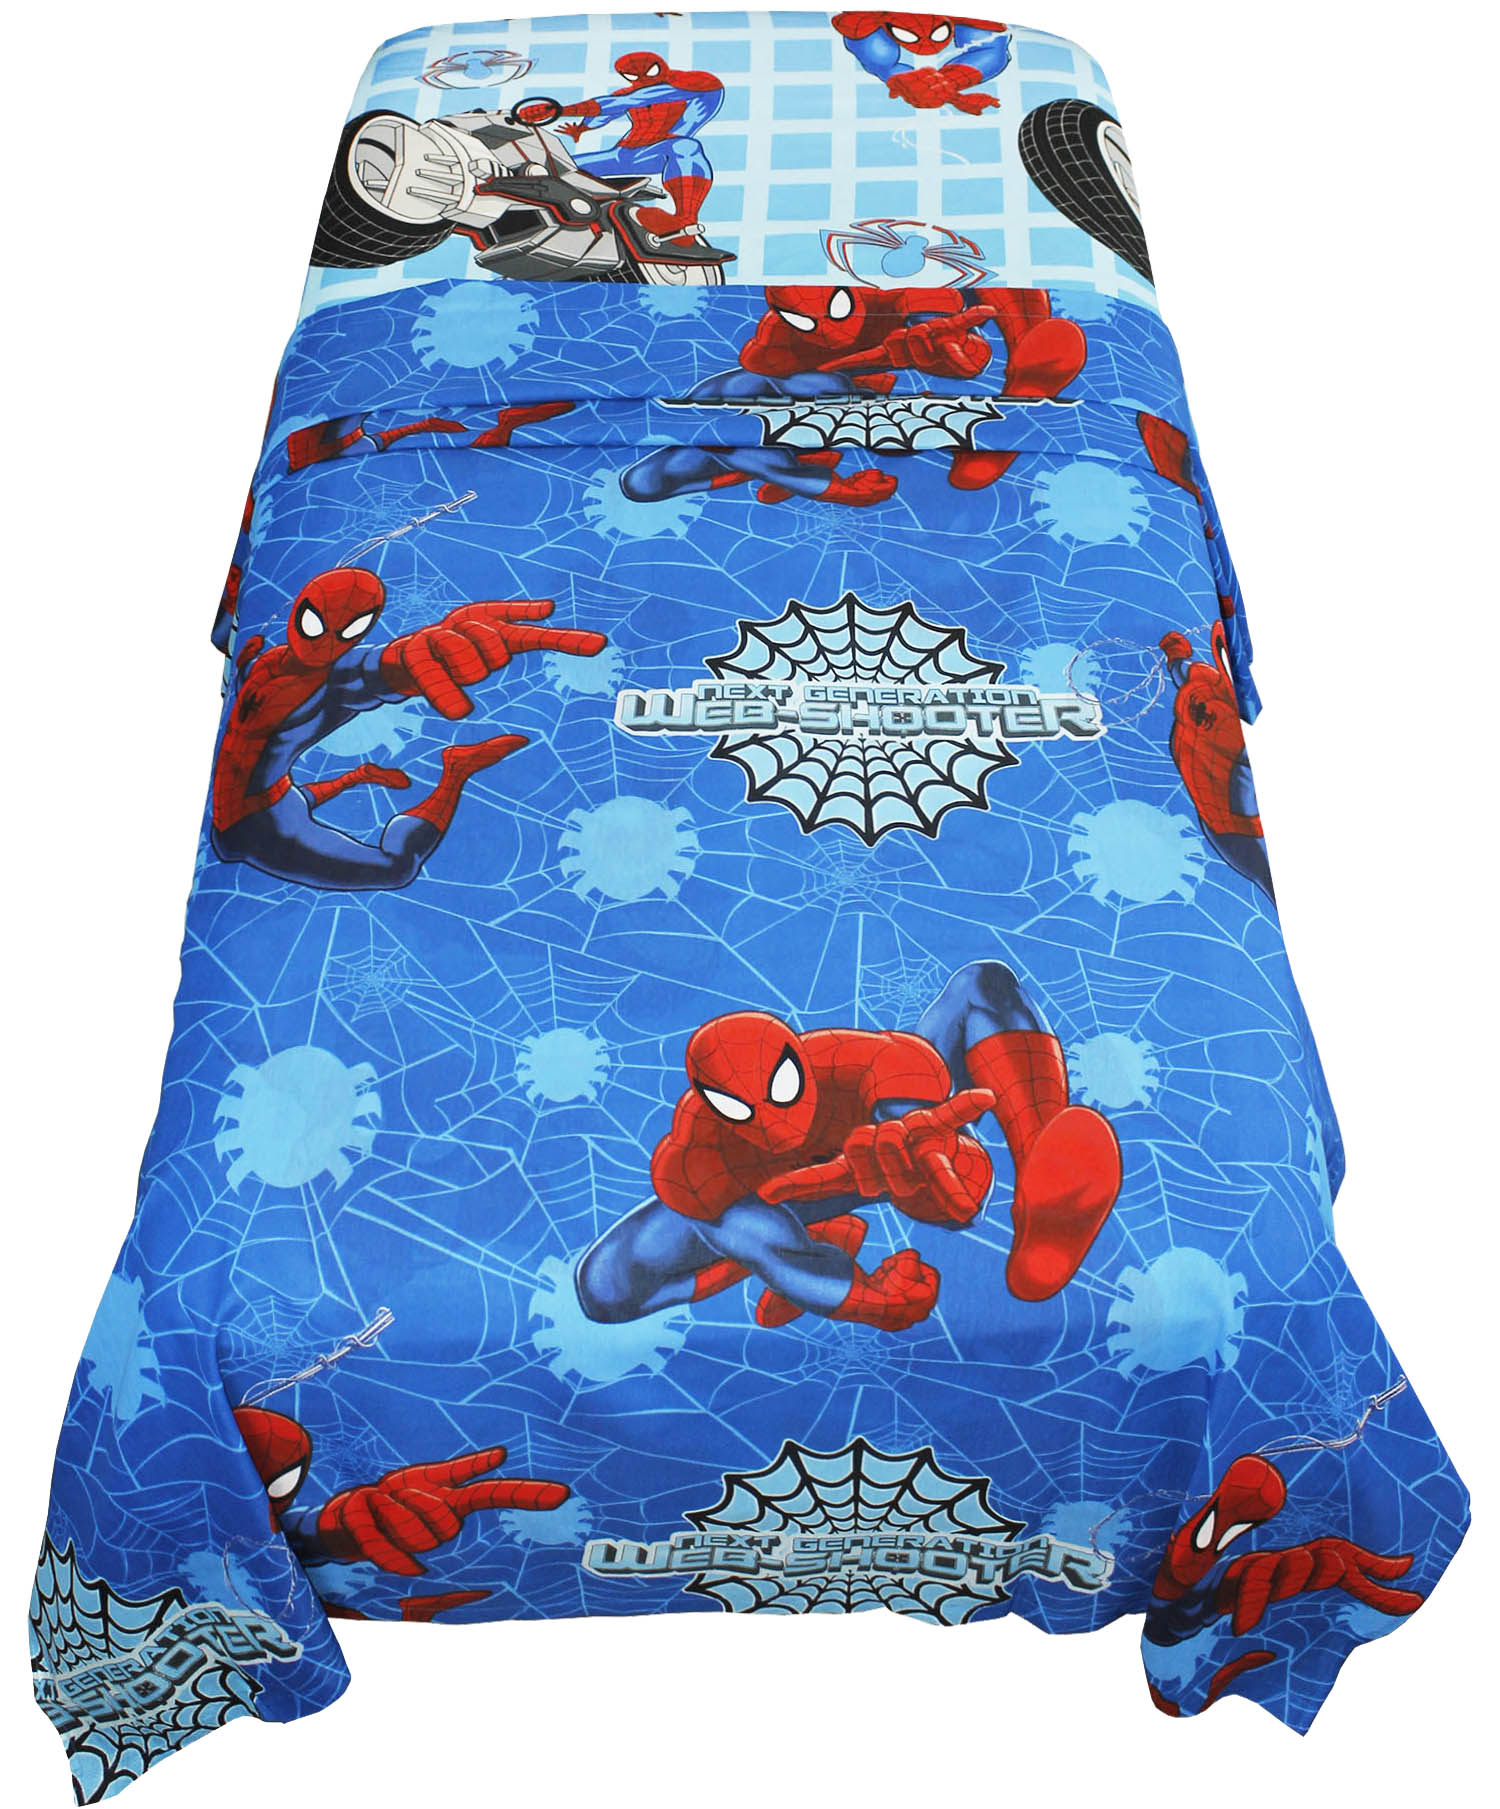 Ultimate Spider-Man Twin Sheets - 2pc Marvel Comics Bedding Accessories 20940